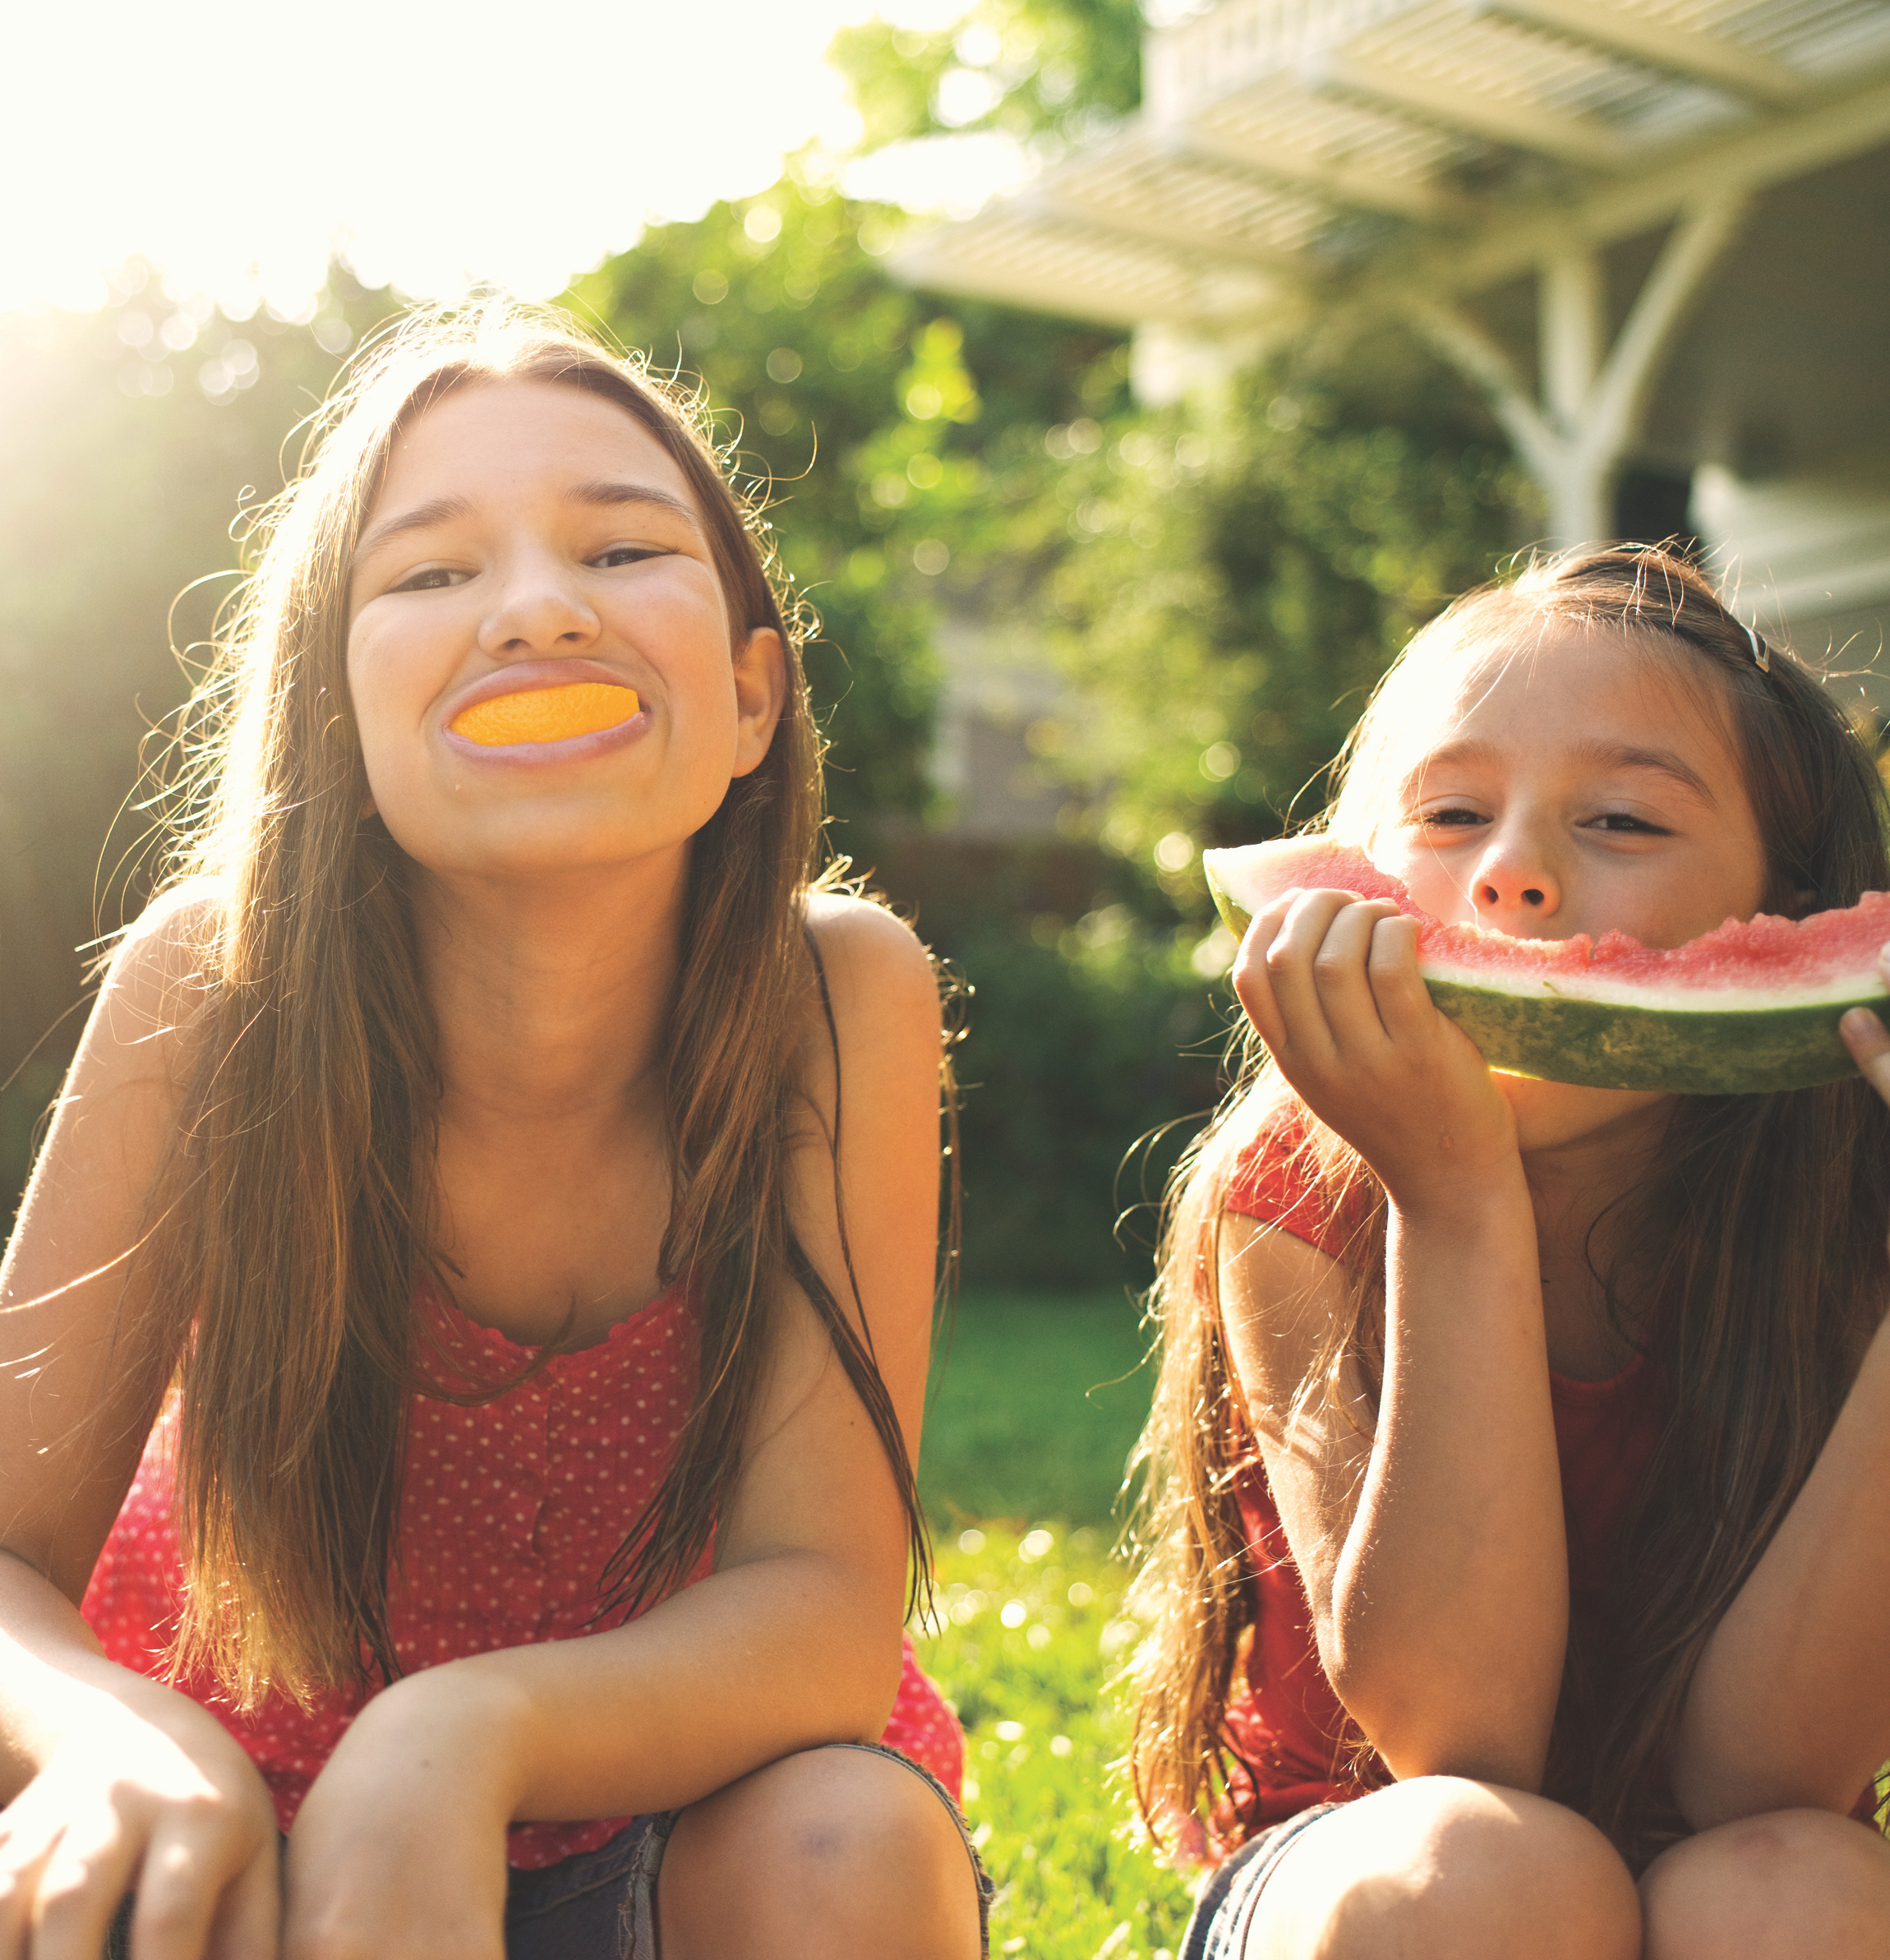 happy kids eating fruit in the summer